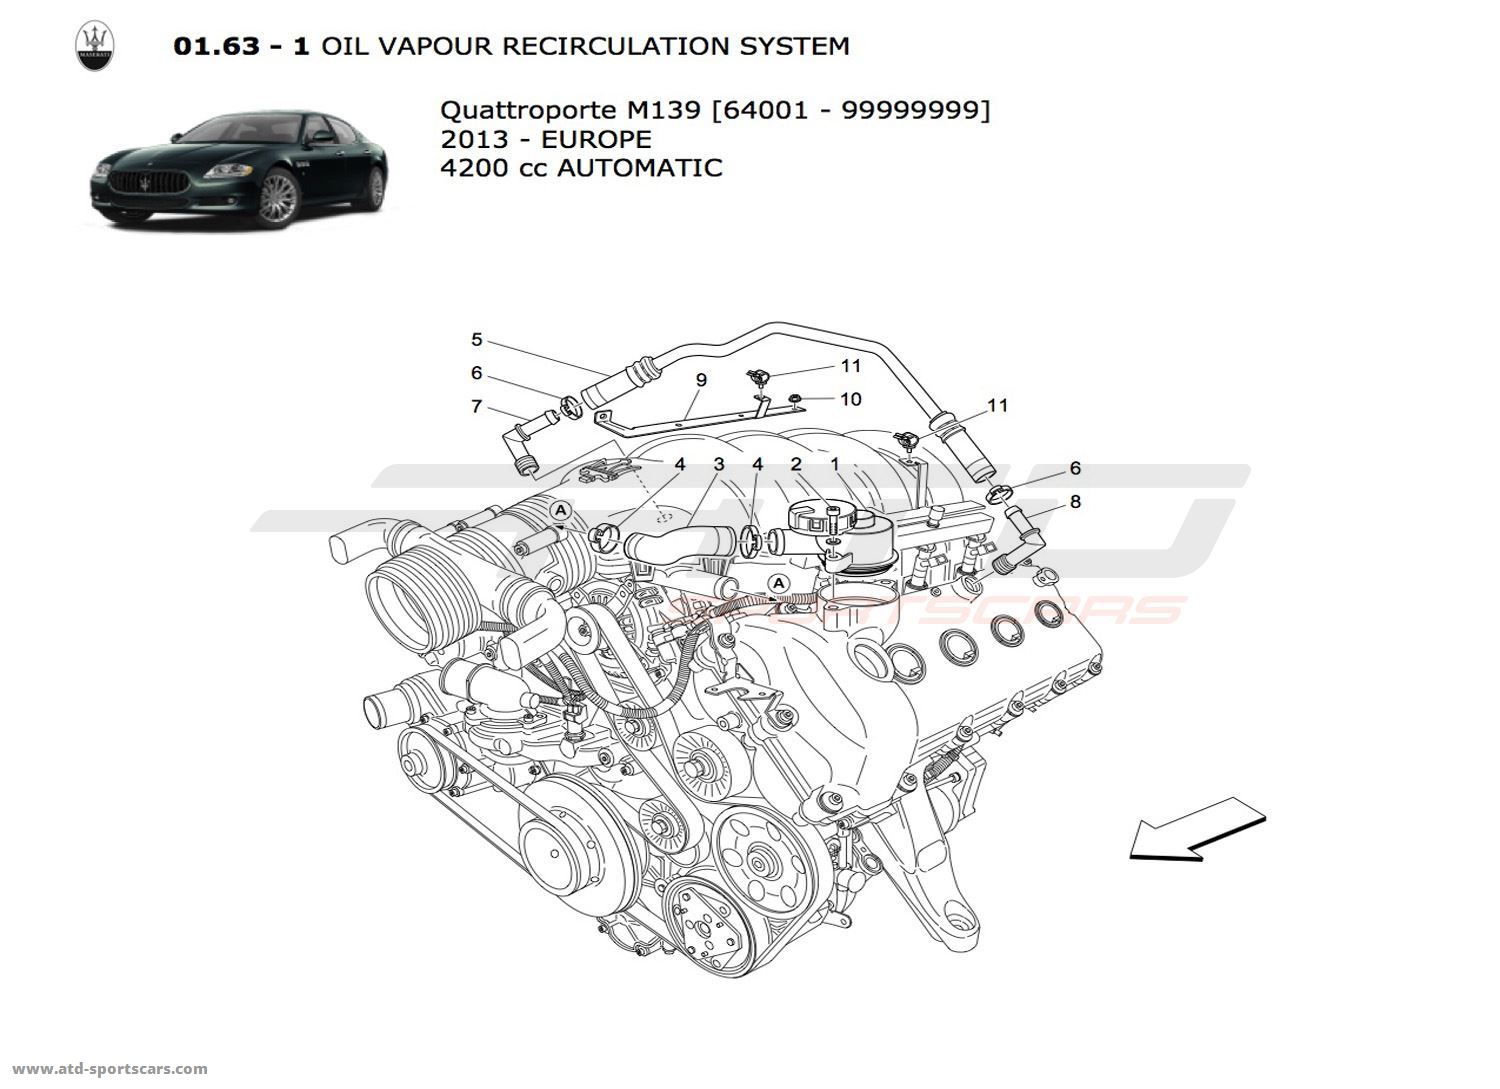 Maserati Quattroporte 4 2l Boite Auto Oil Vapour Recirculation System 2 Parts At Atd